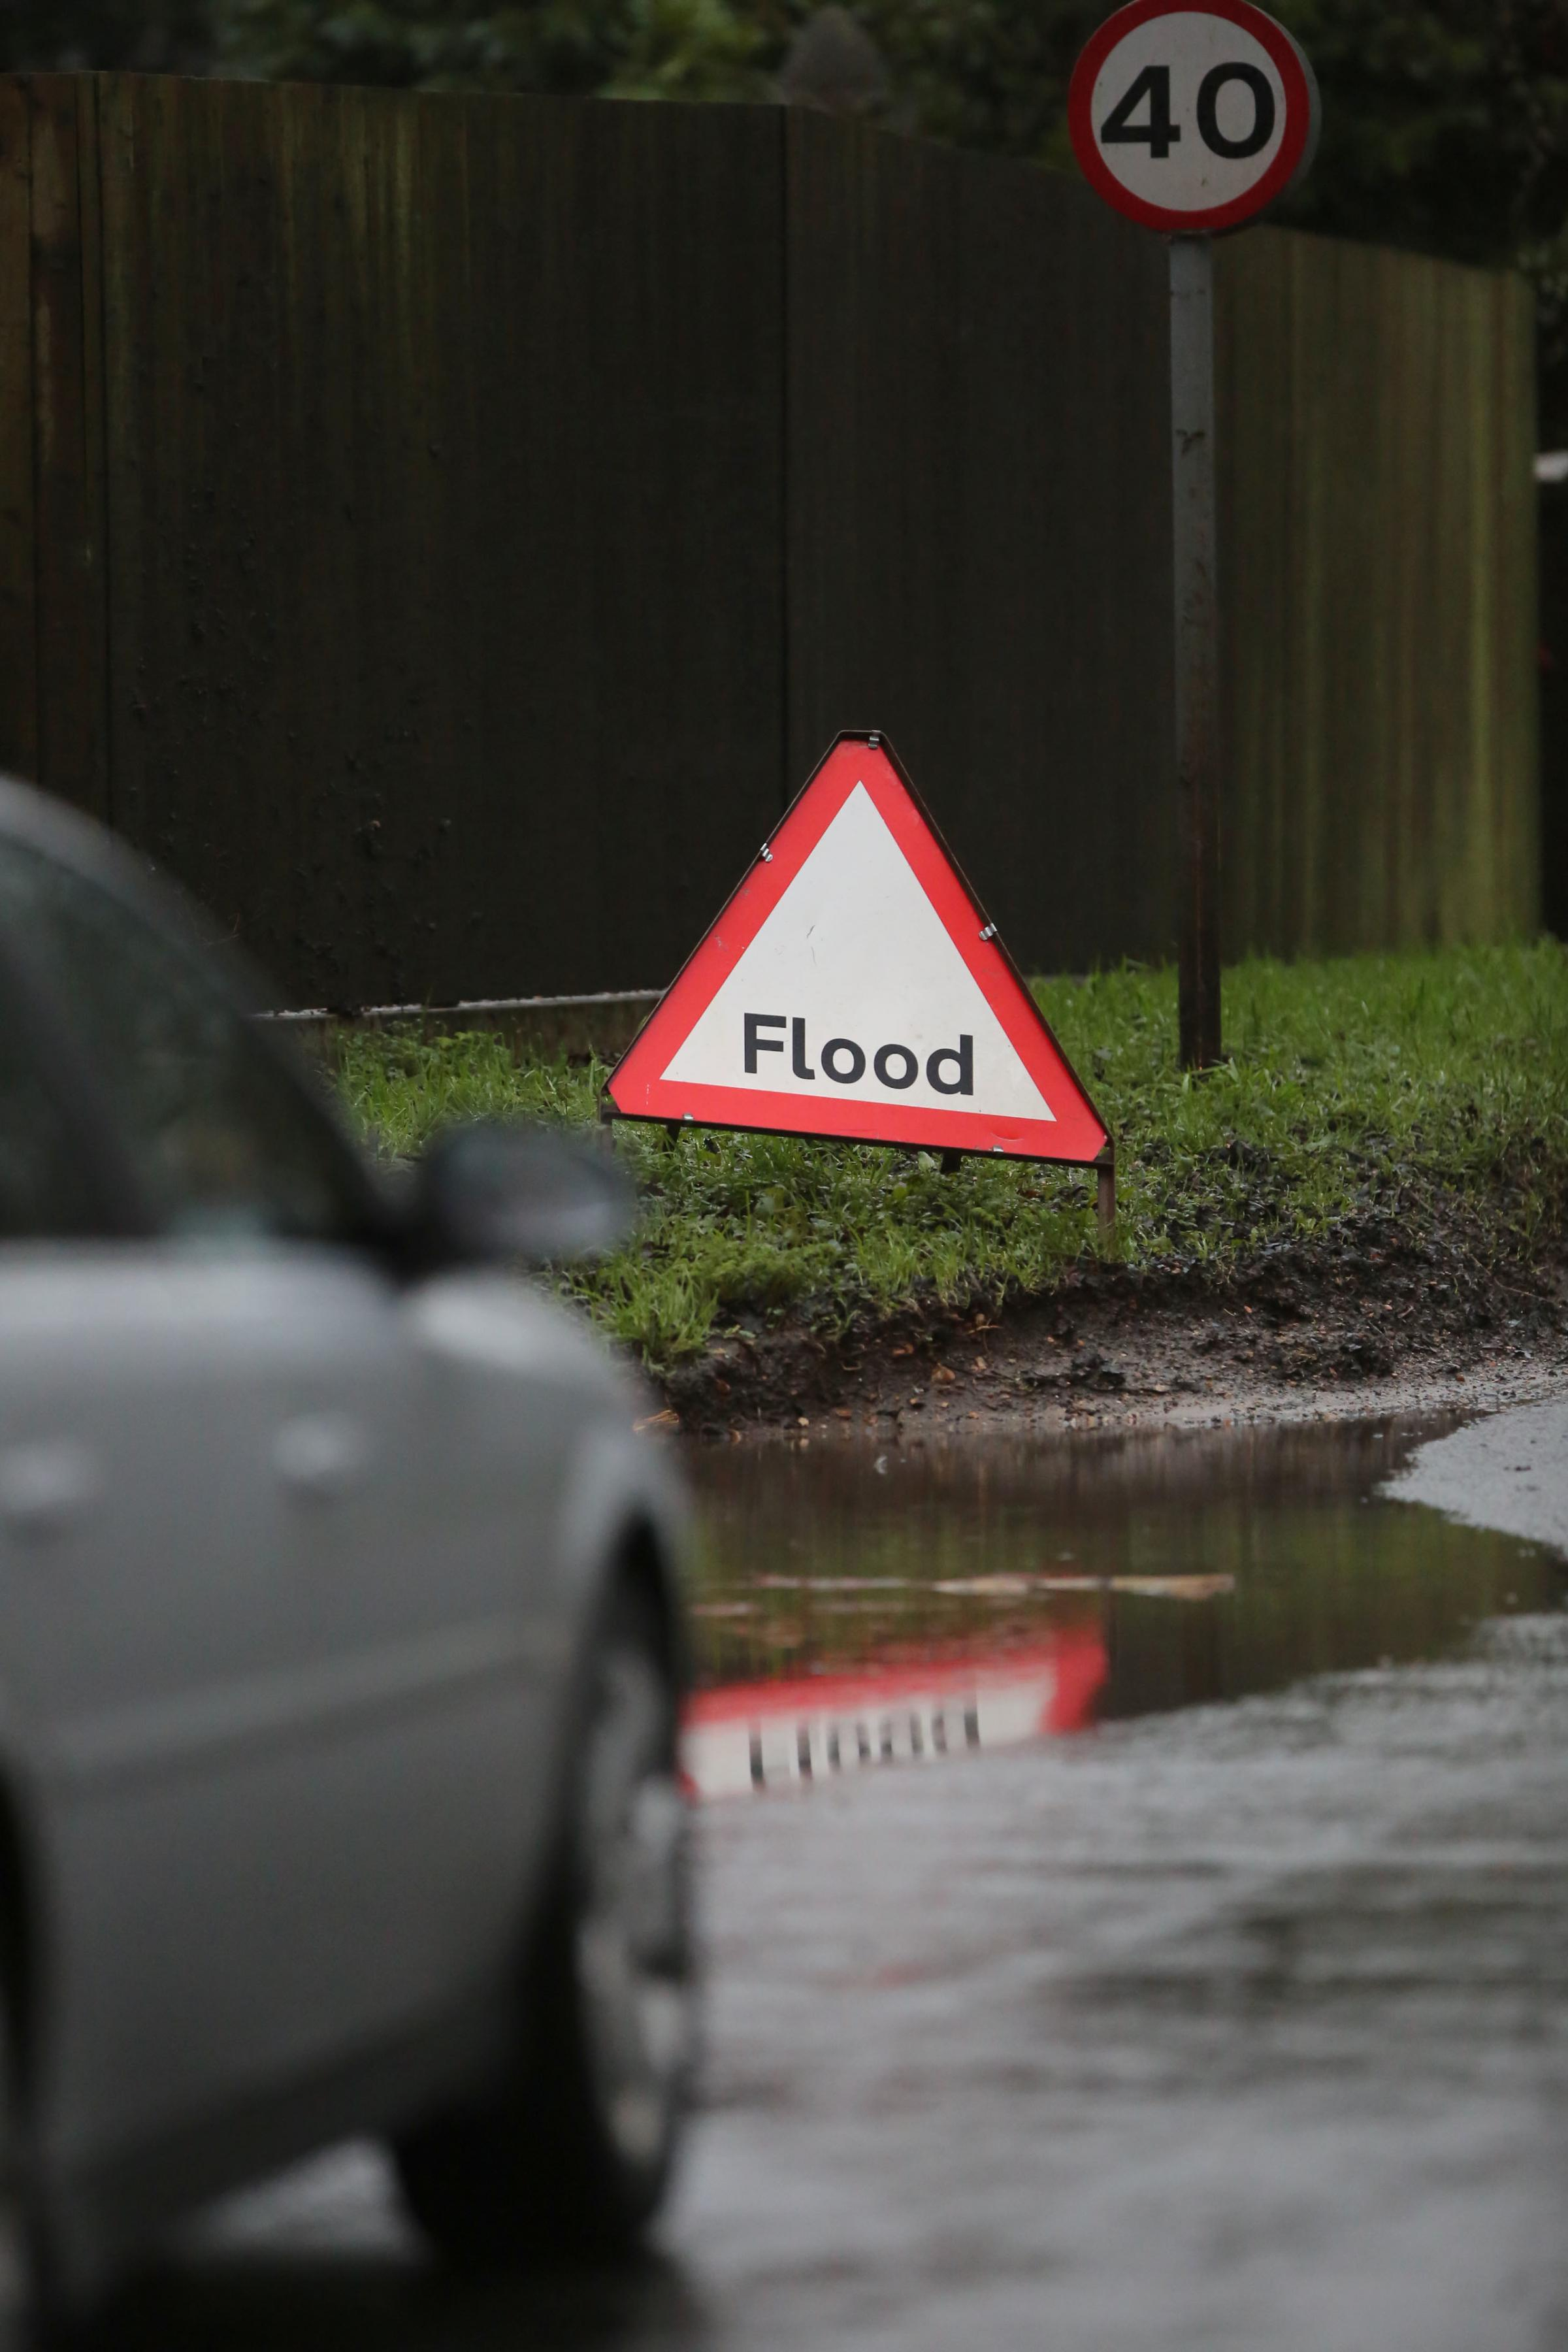 Weather warning for heavy rain is issued for Dorset